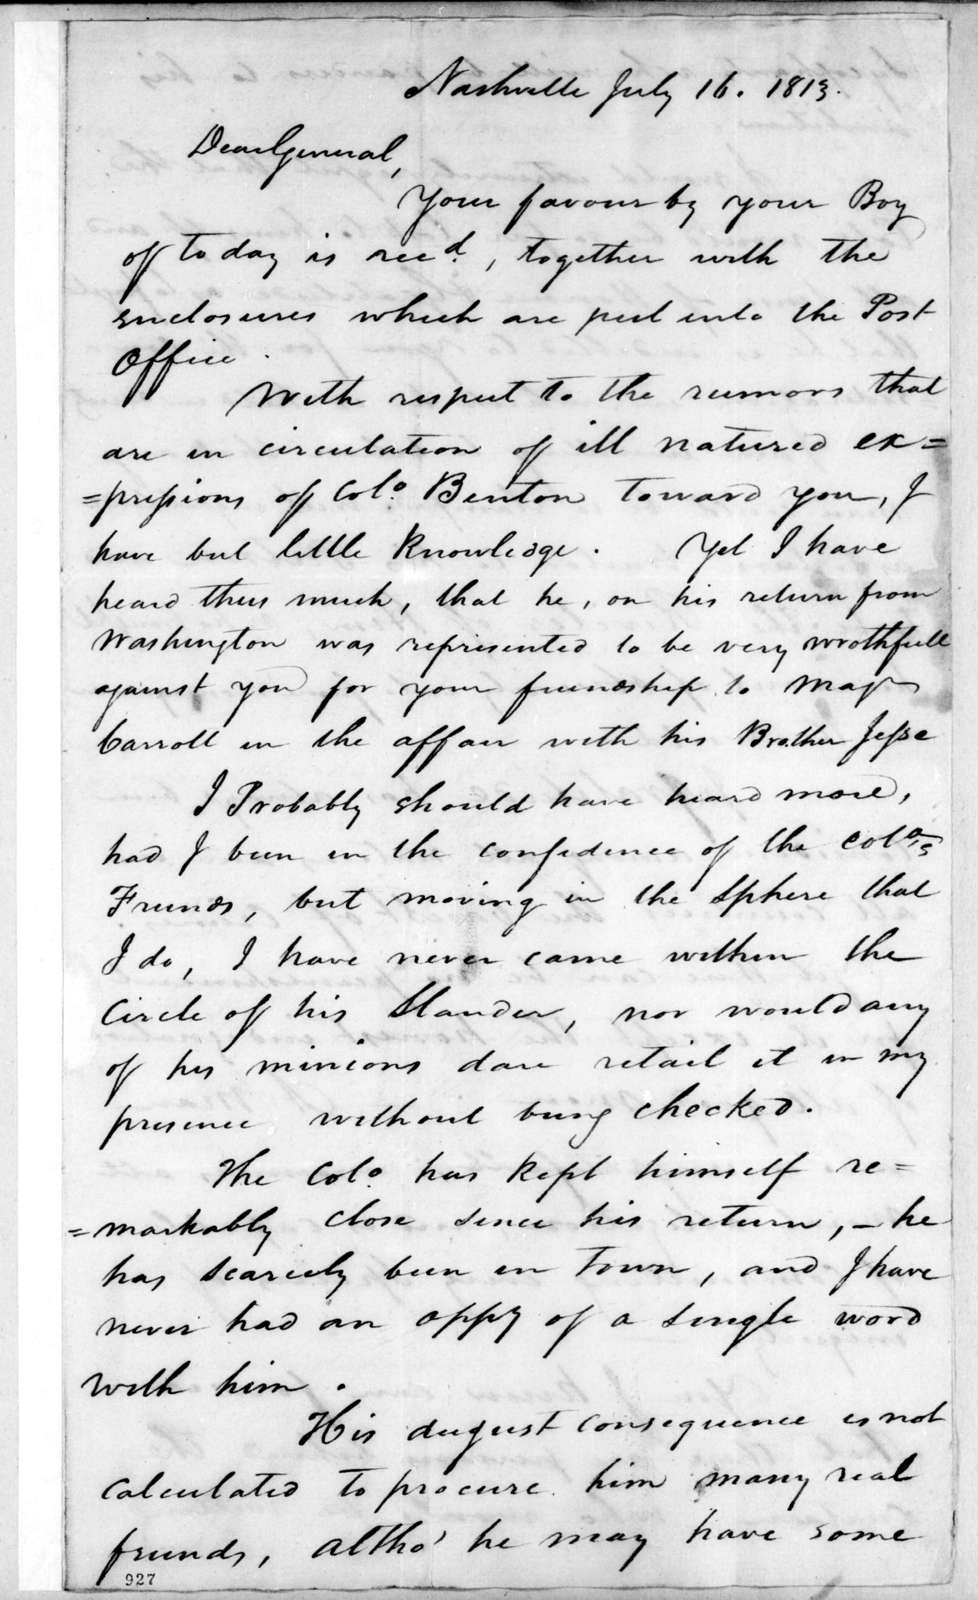 Andrew Hynes to Andrew Jackson, July 16, 1813